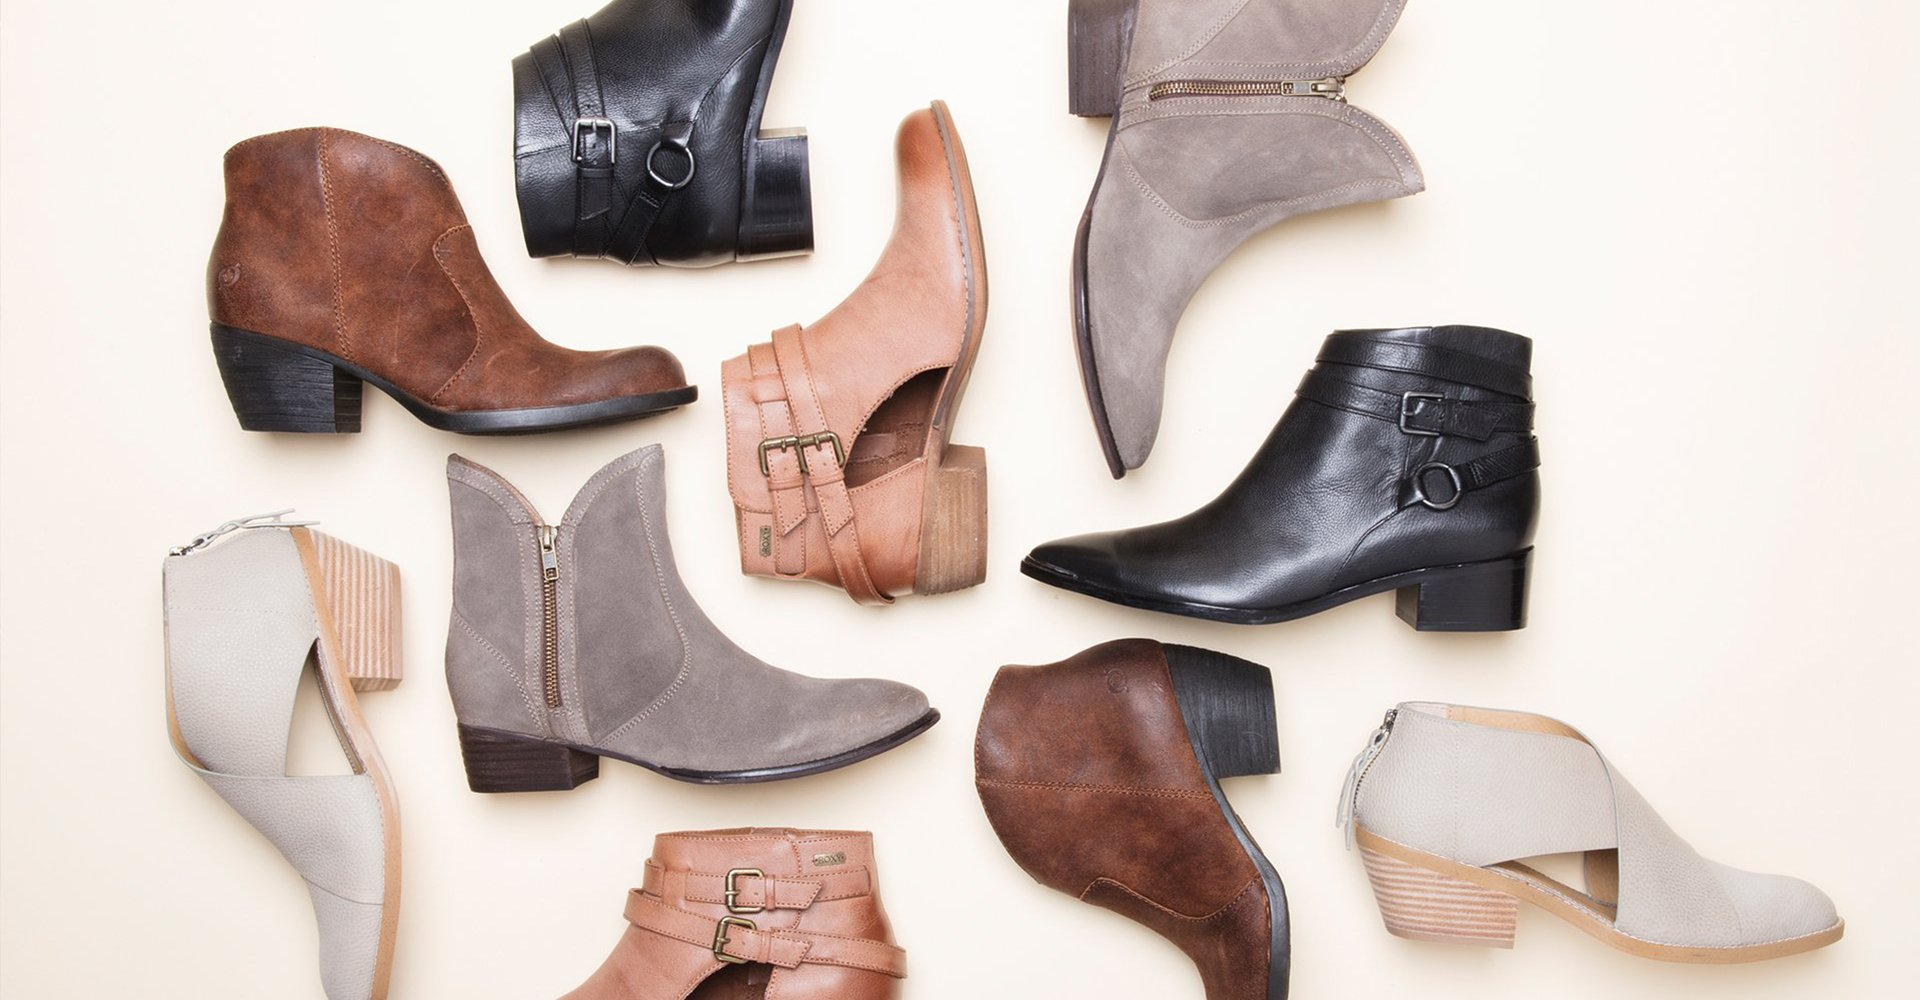 Image of an assortment of booties.